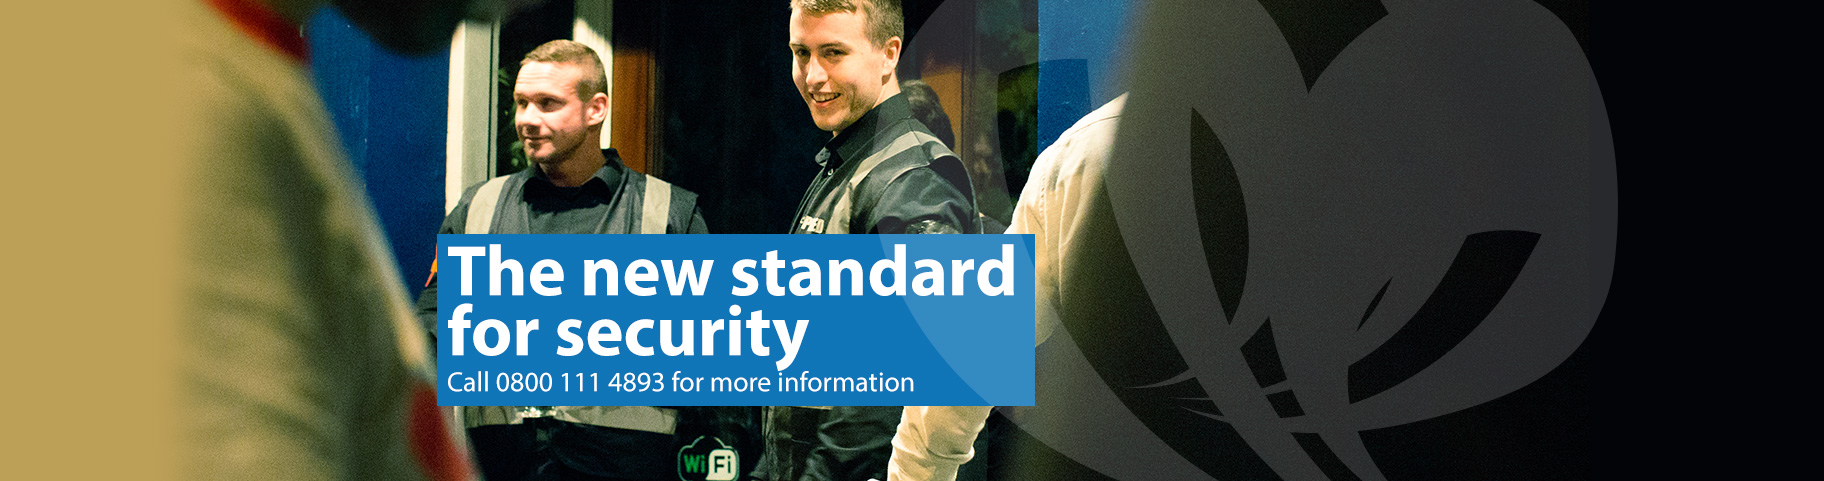 https://inspiredsecurity.com/wp-content/uploads/2014/11/banner3.jpg